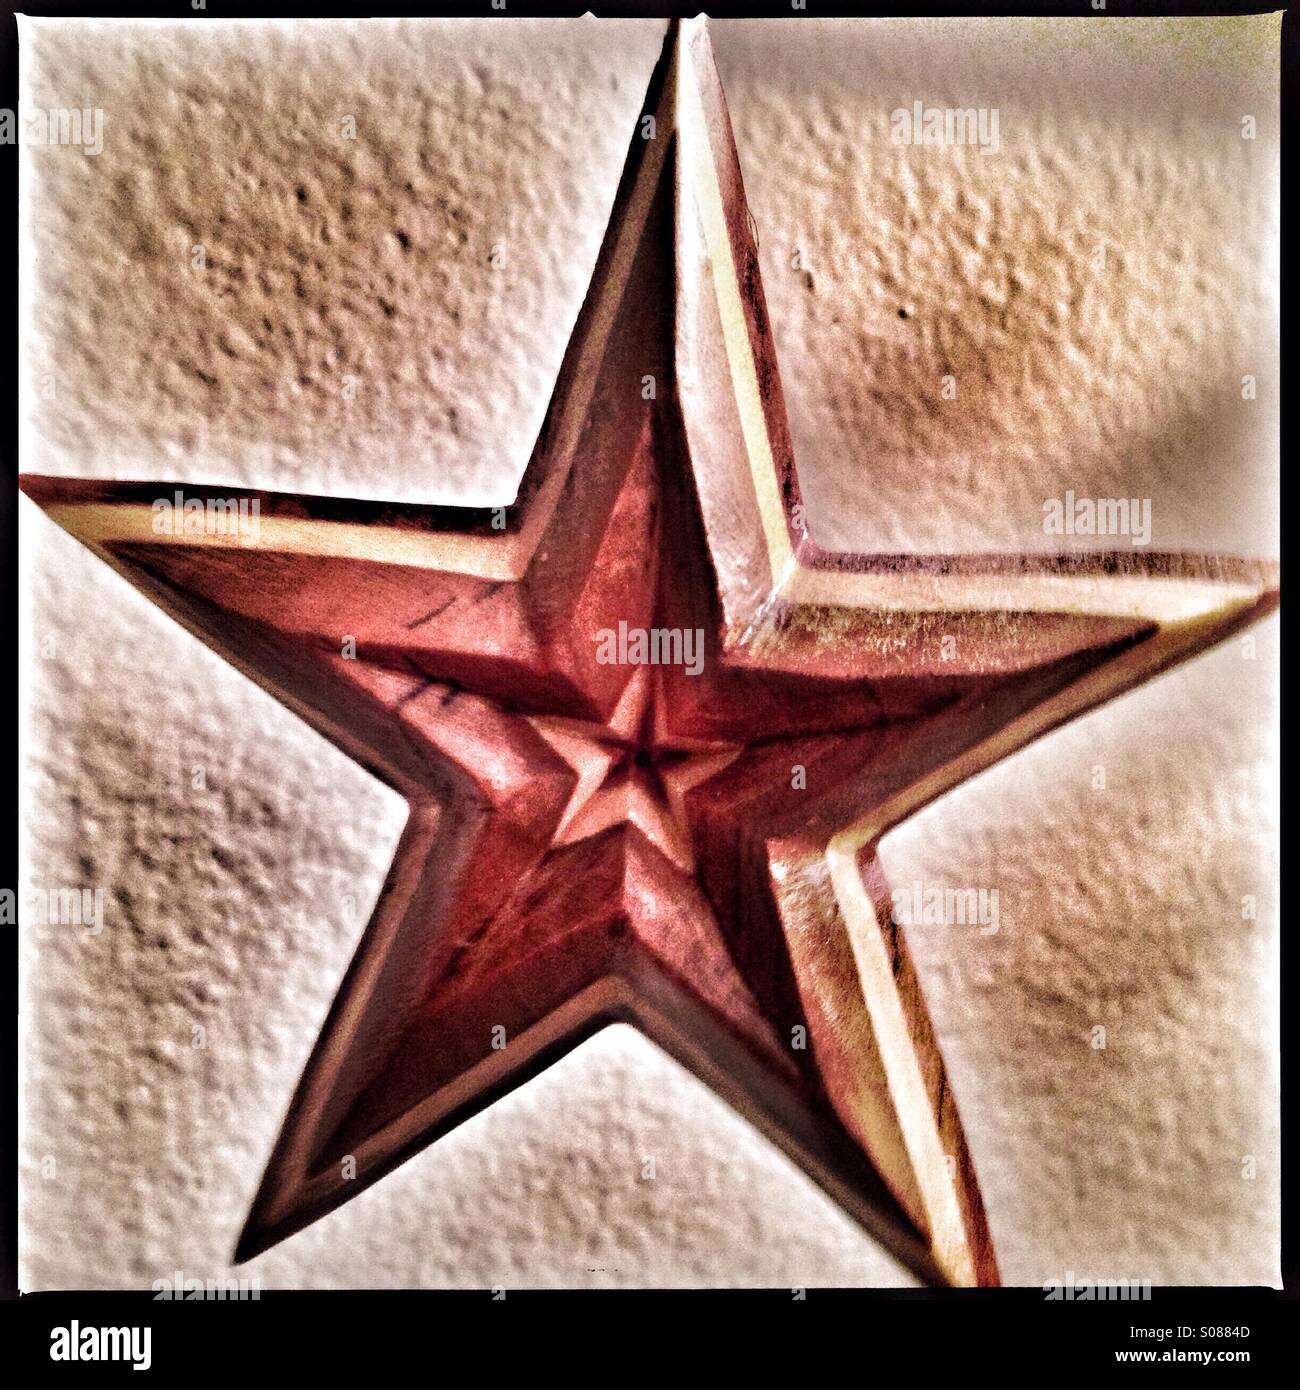 A wooden star. - Stock Image